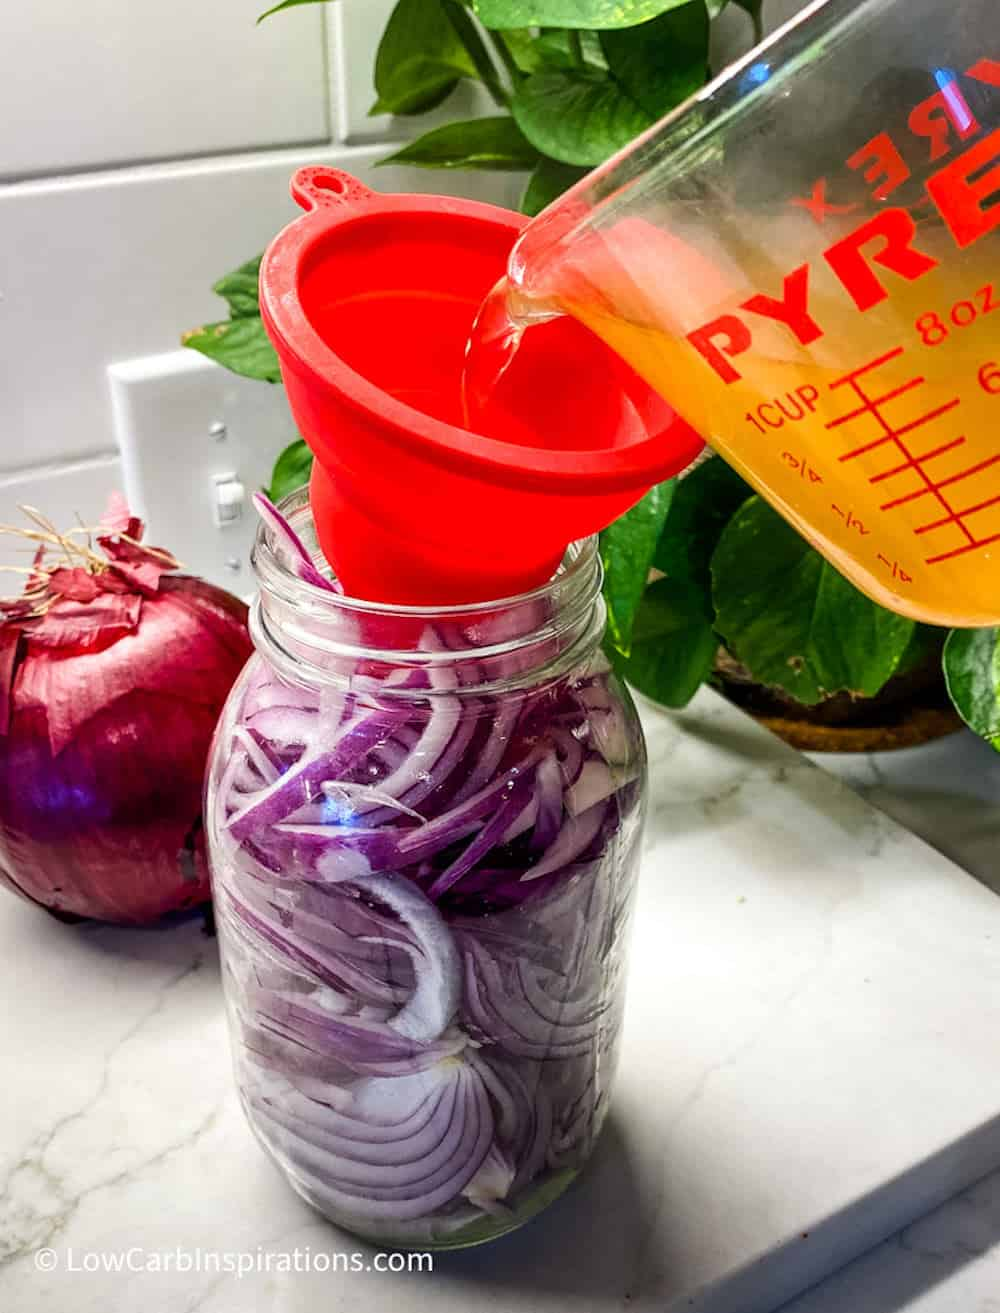 Pouring pickling juice into a mason jar filled with red onions